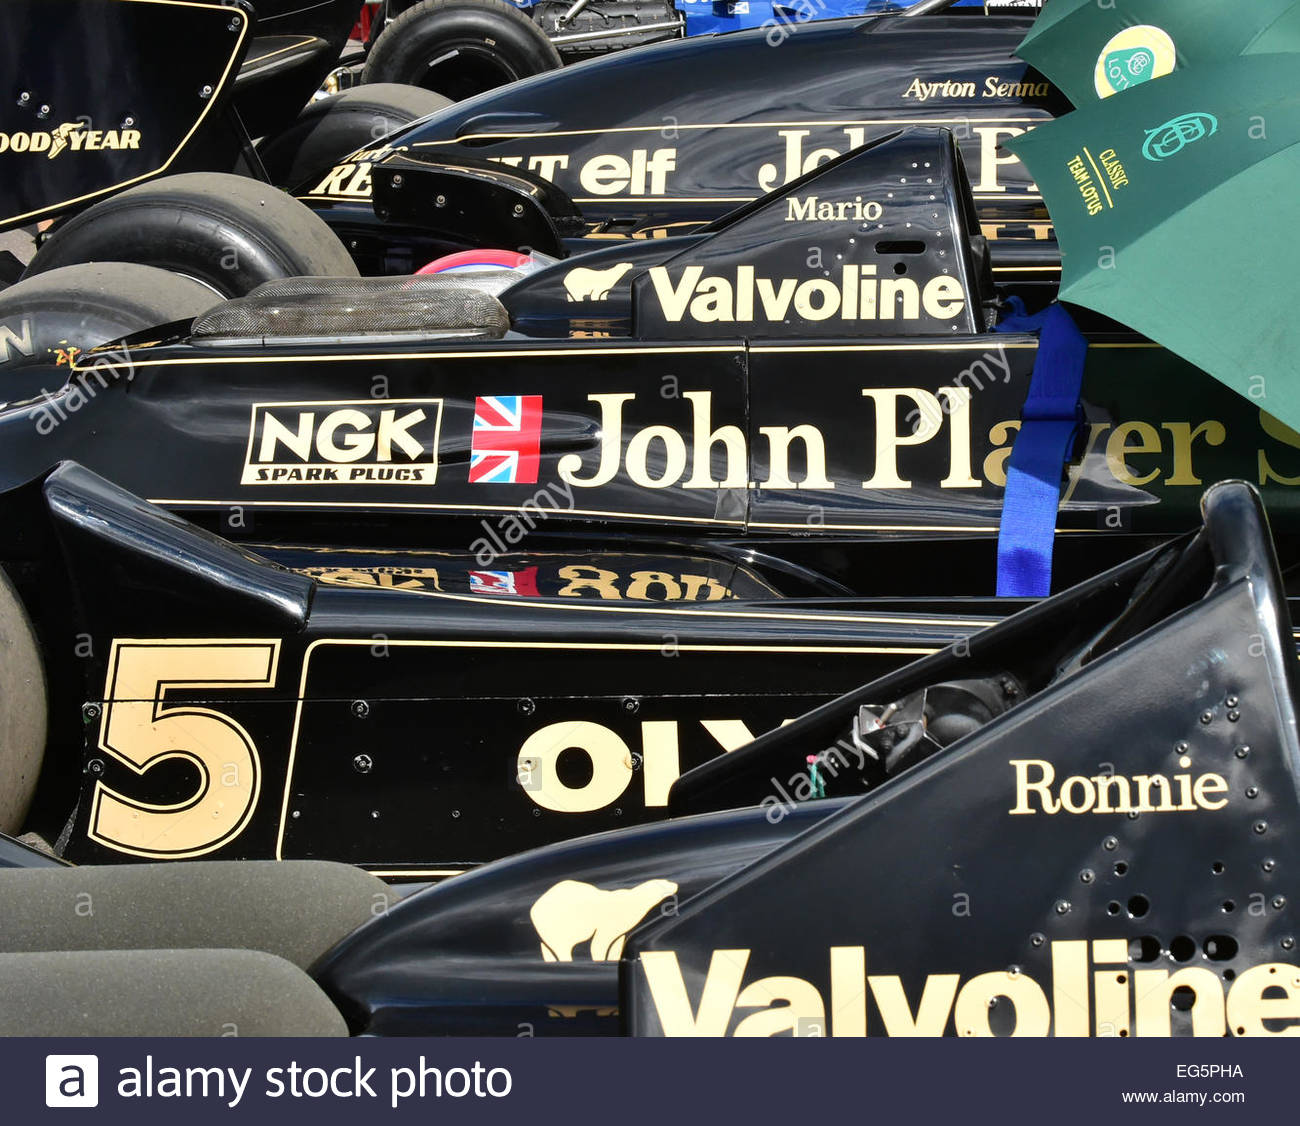 a-collection-of-jps-lotus-f1-cars-at-goodwood-festival-of-speed-2014-EG5PHA.jpg